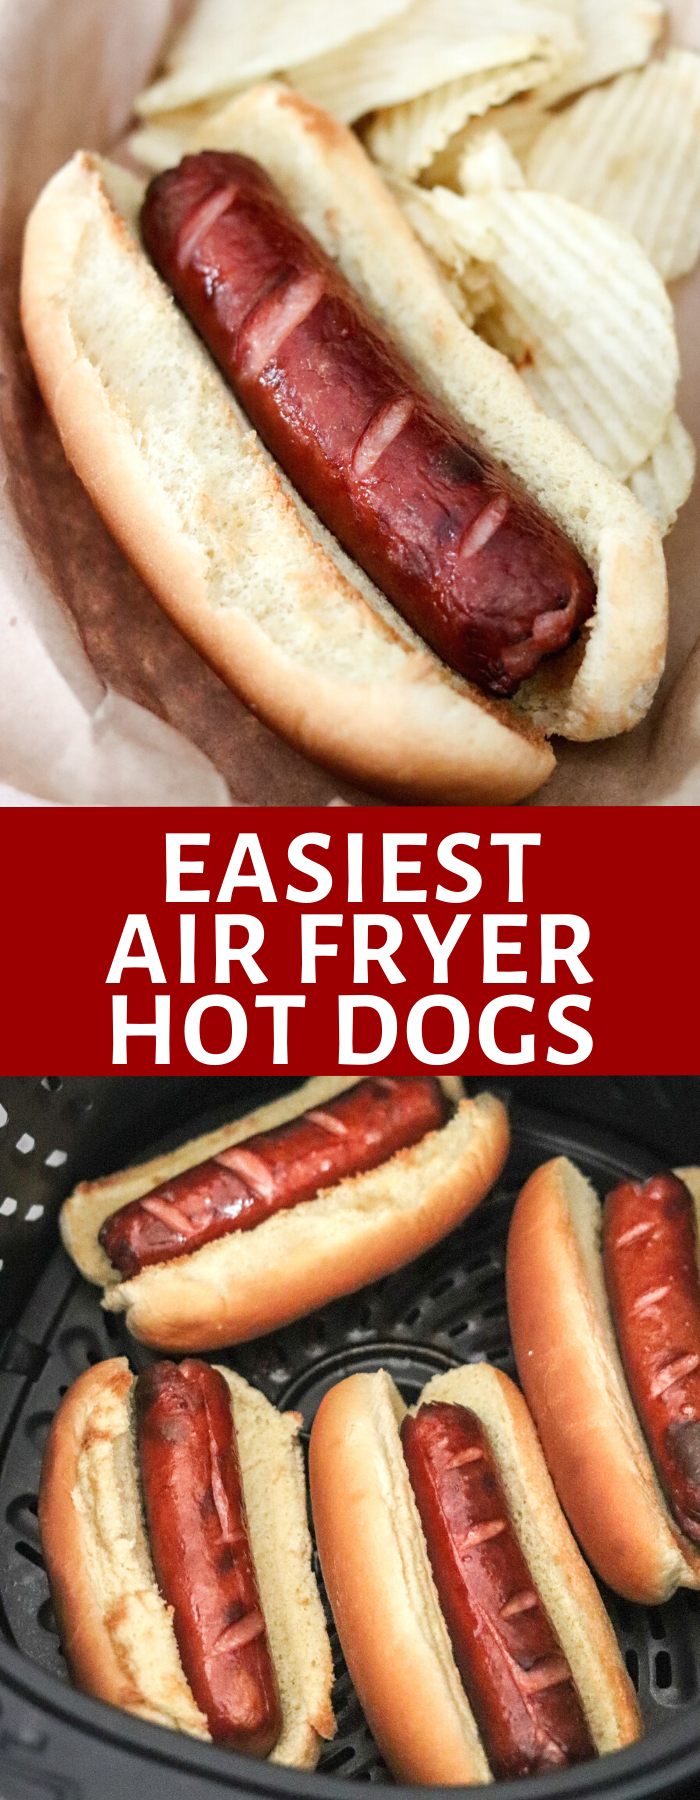 Cooking hot dogs has never been easier than in the Air Fryer! Air Fryer Hot Dogs are perfectly 'grilled' in no time and with hardly any effort!